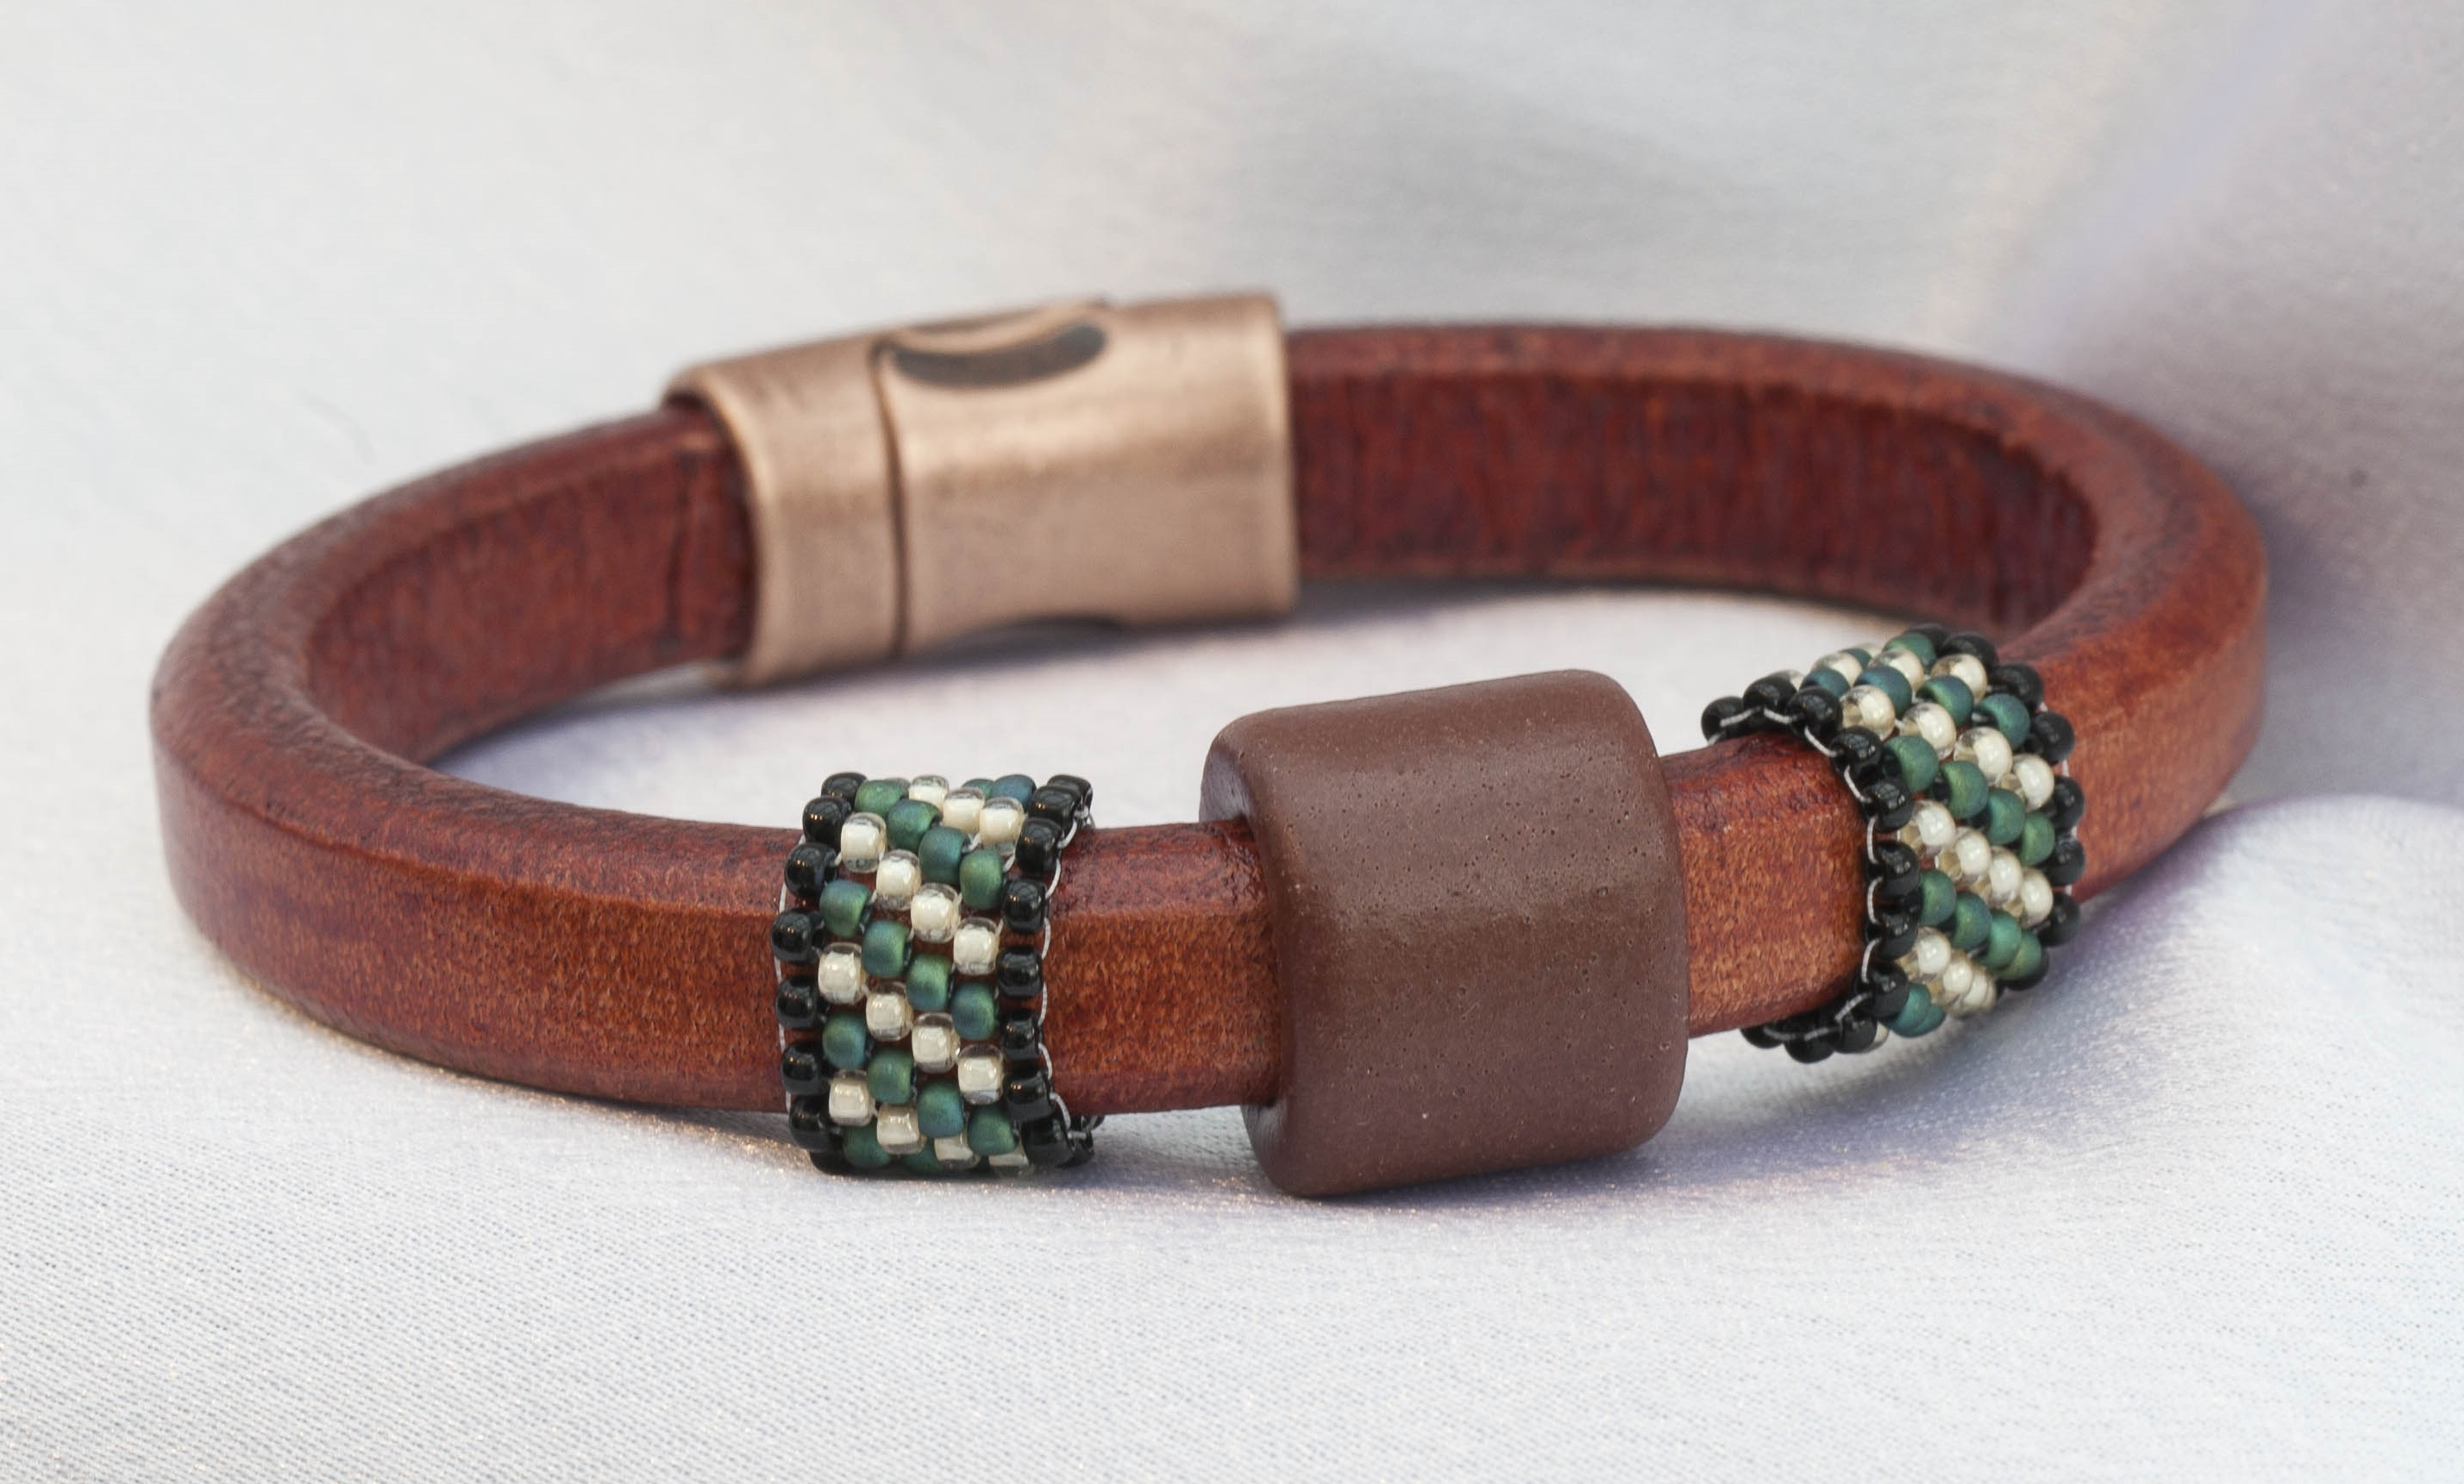 Mens Leather Bracelets. Men's leather bracelets are one of the hottest trends in men's accessories that have both an edgy and timeless appeal. Appropriate for casual or dressed-up occasions, these are must-haves for any man who appreciates the finer things in life.